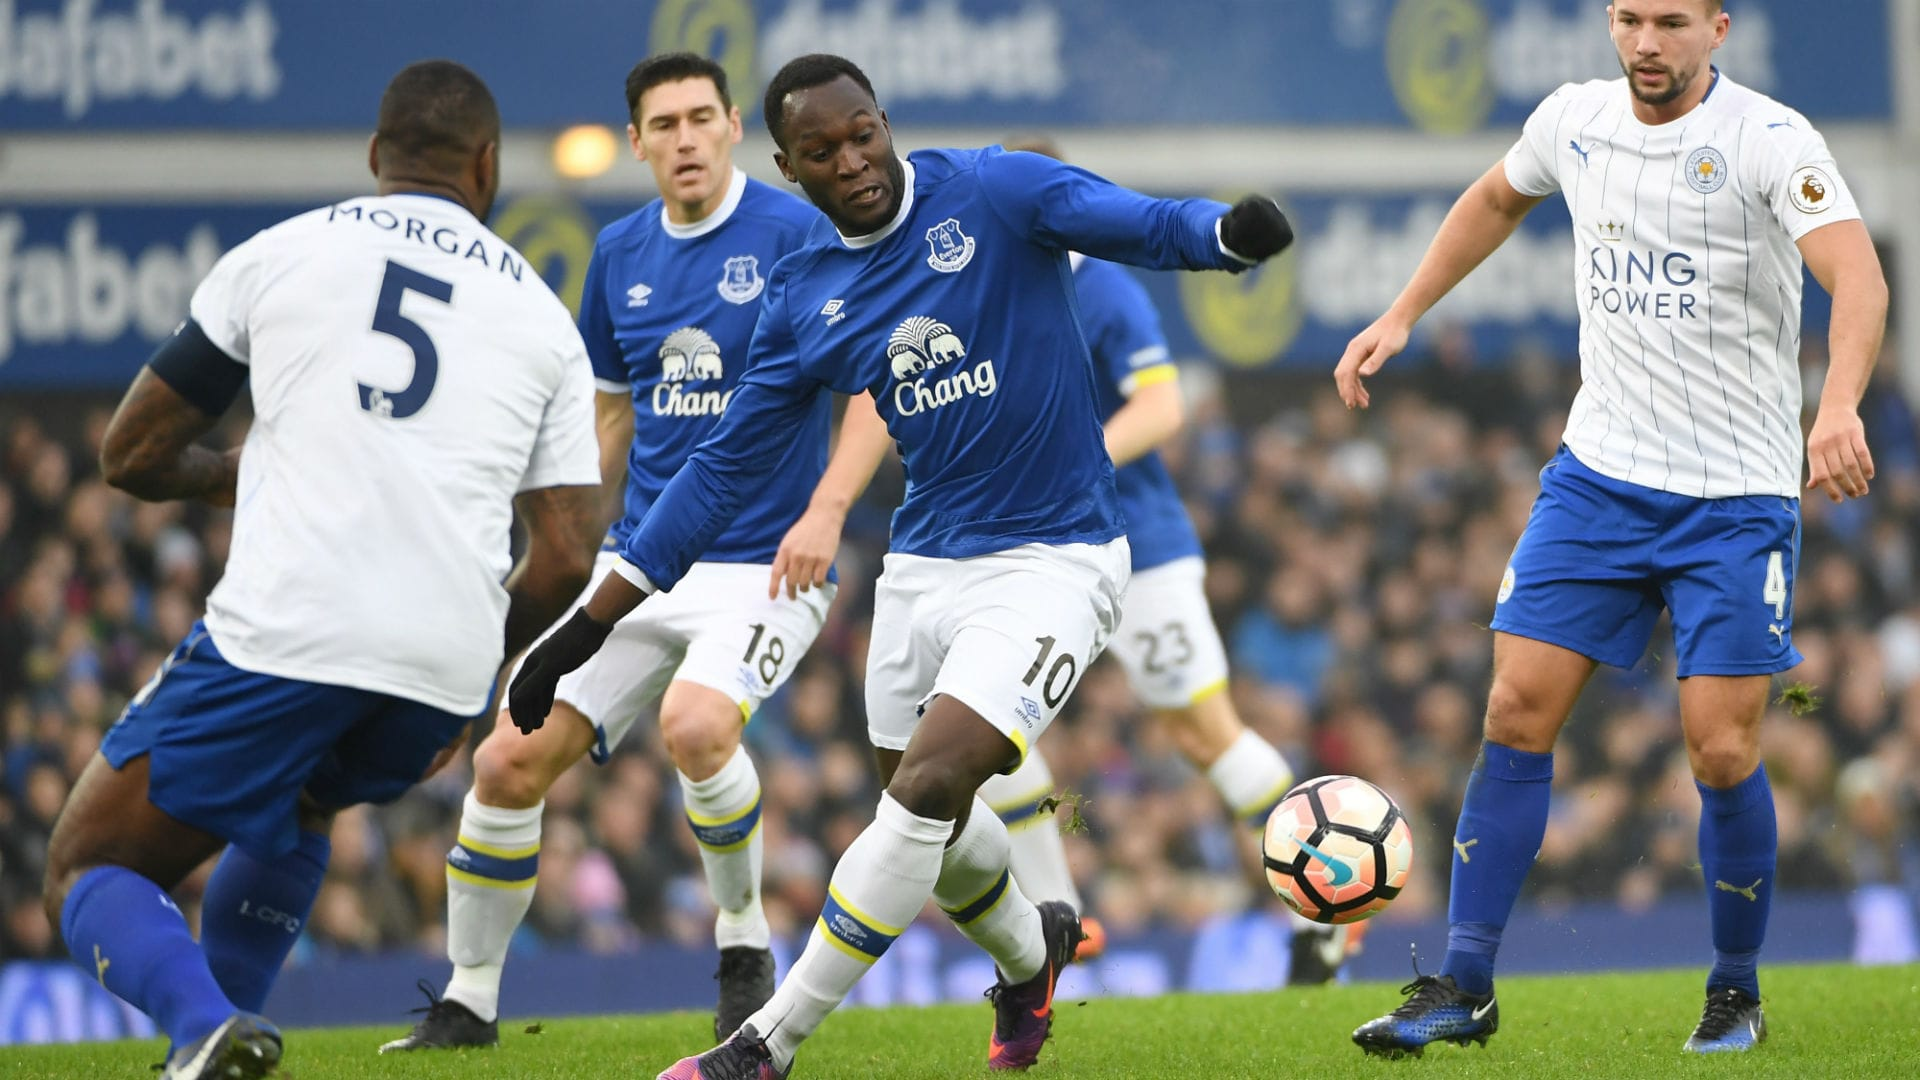 EVERTON vs LEICESTER prediction